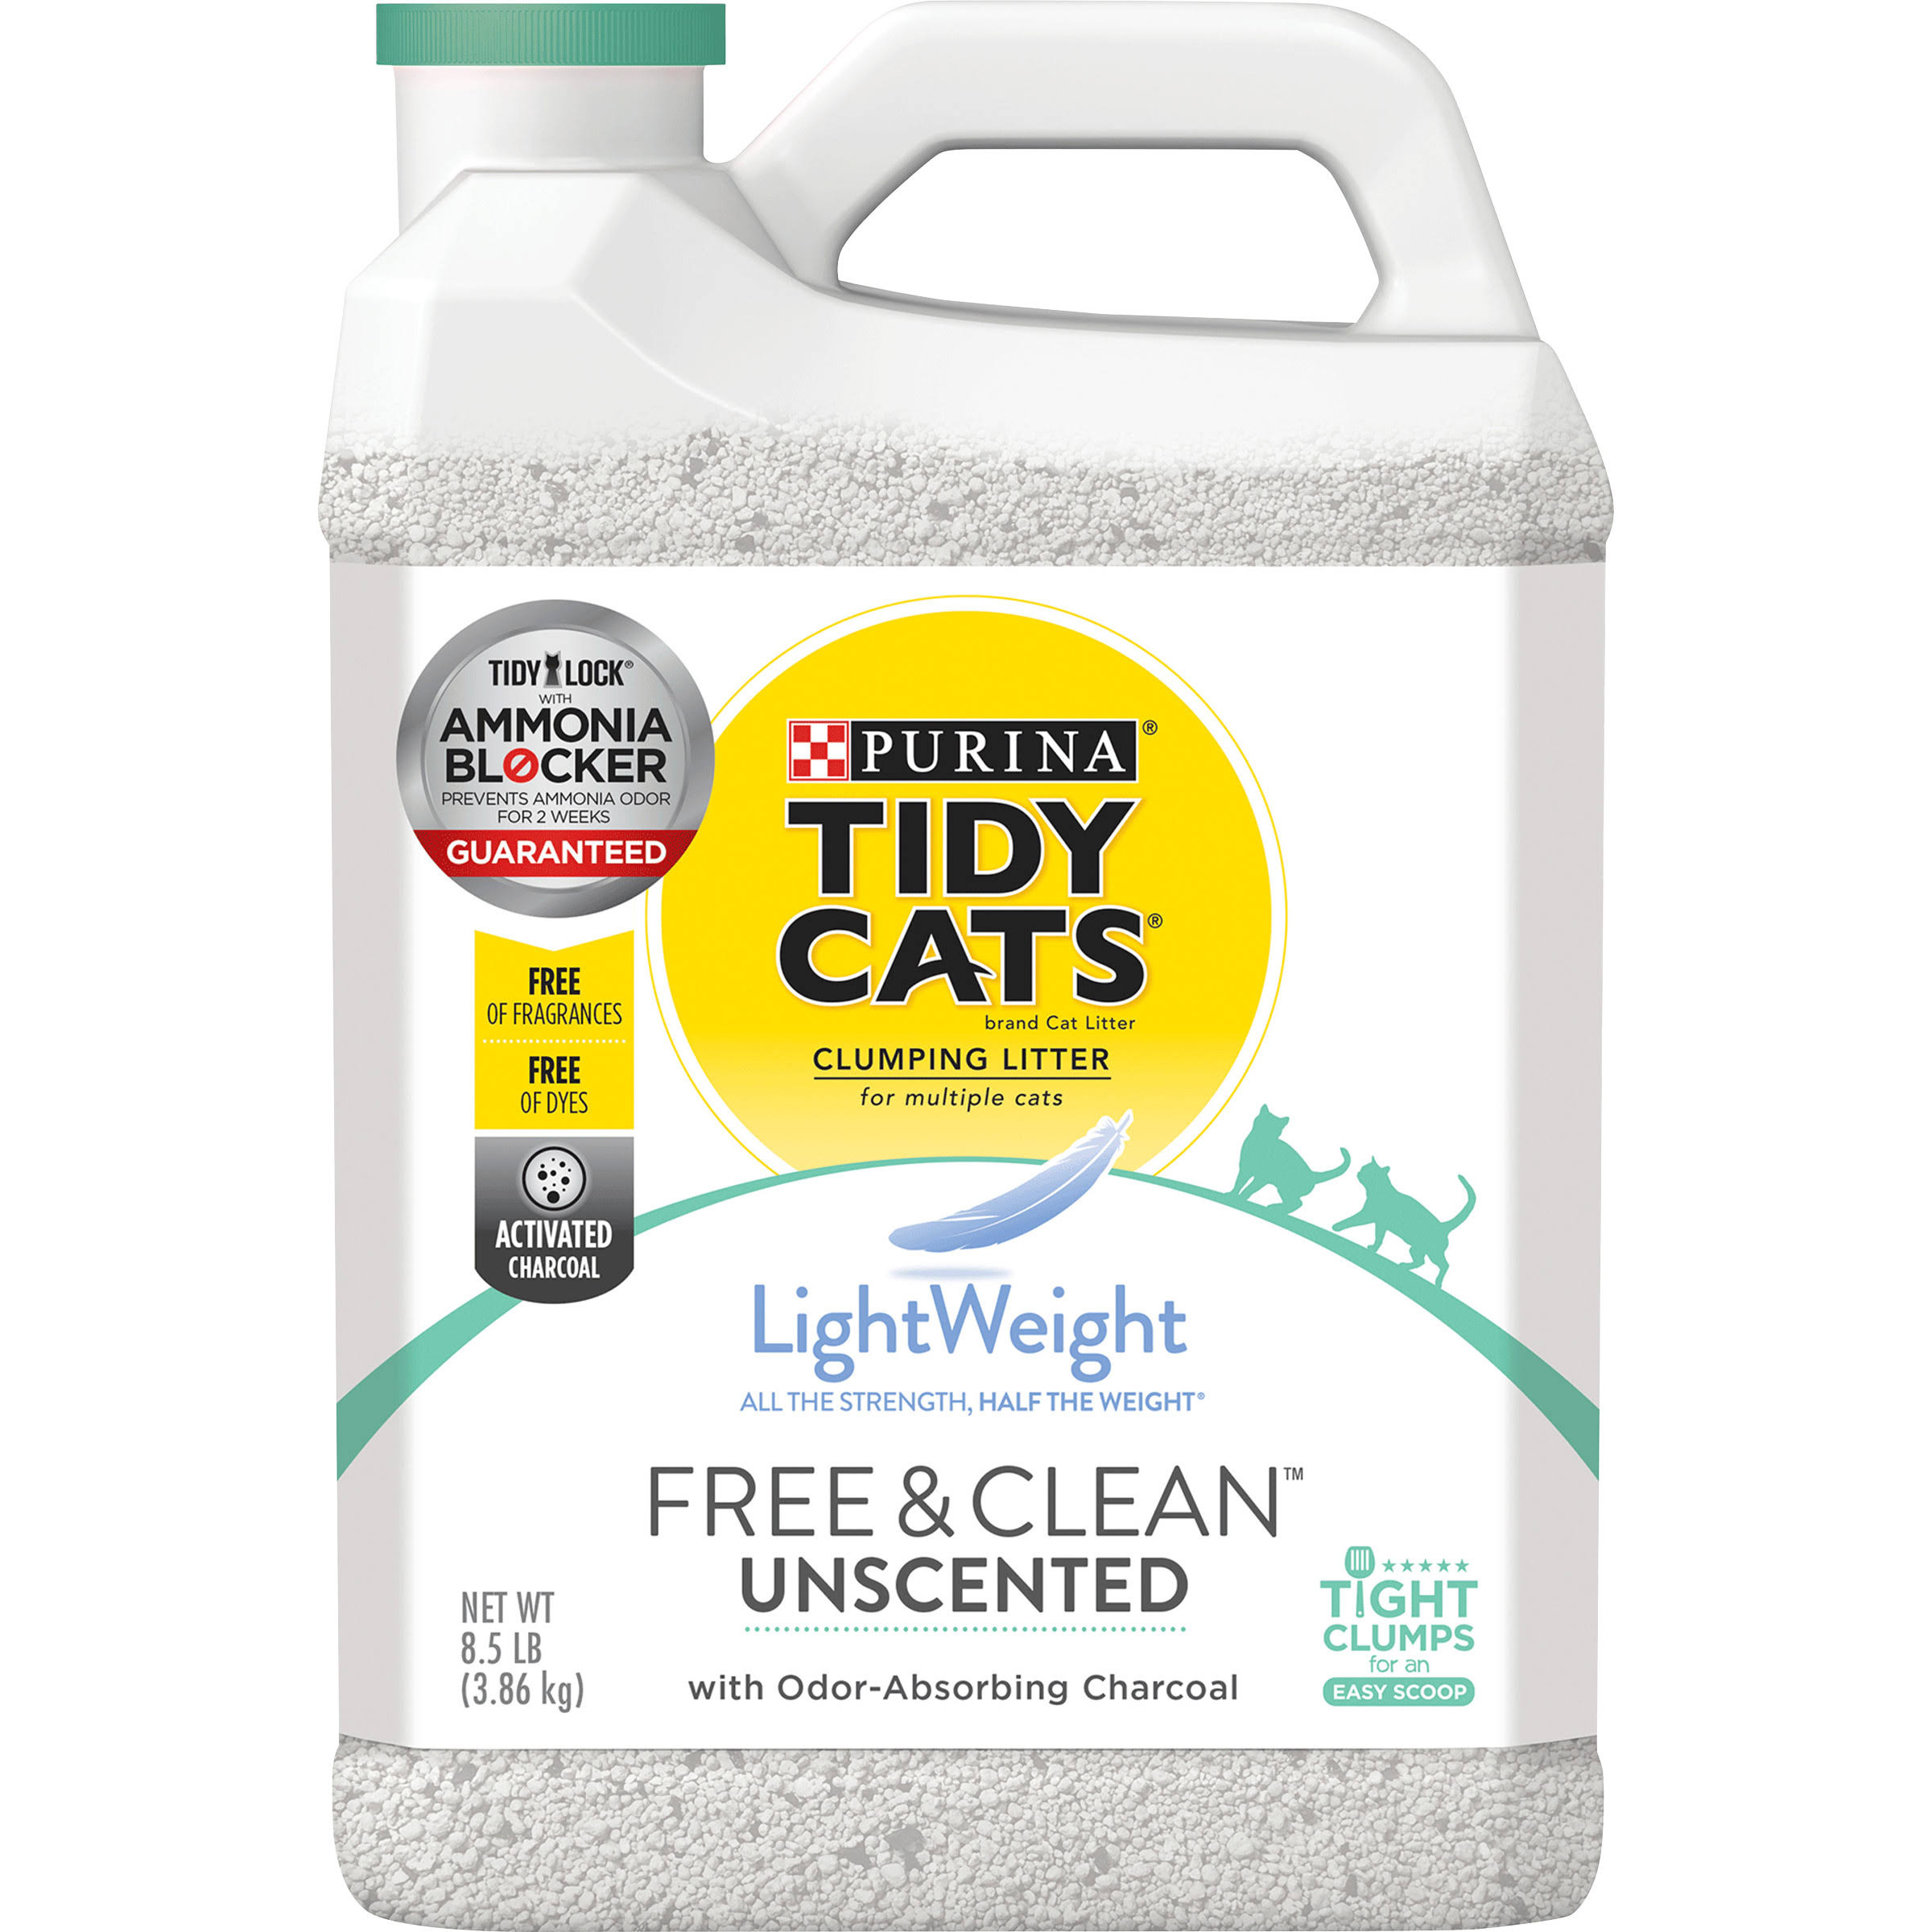 Tidy Cats LightWeight Cat Litter, Clumping, Free & Clean, Unscented - 8.5 lb